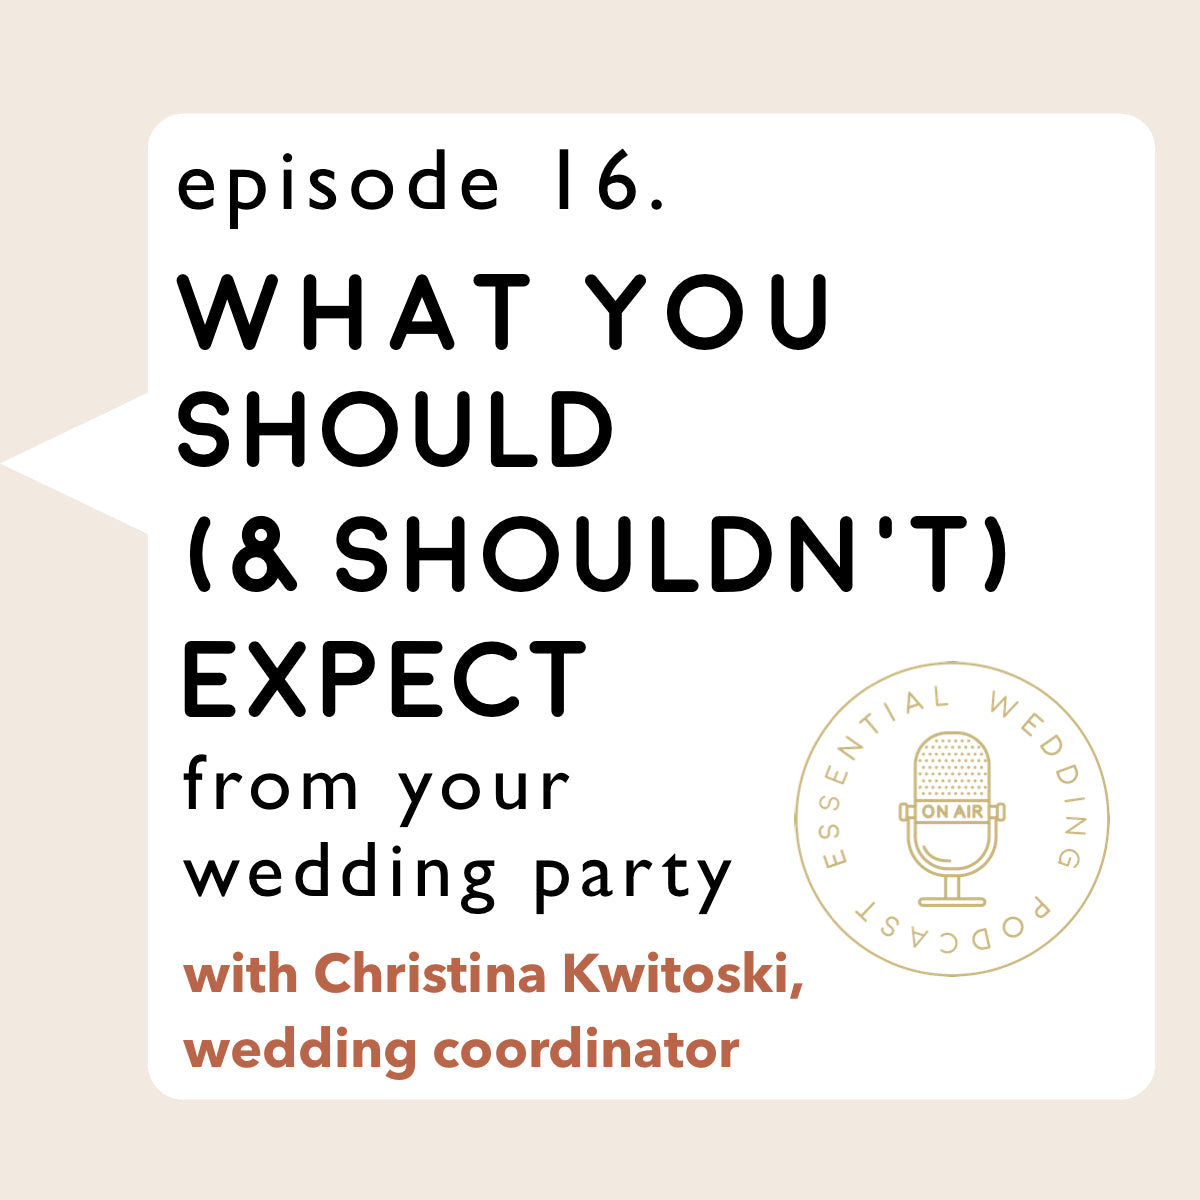 Ep. 16 What You Should & Should Not Expect from Your Wedding Party w/ Christina Kwitoski